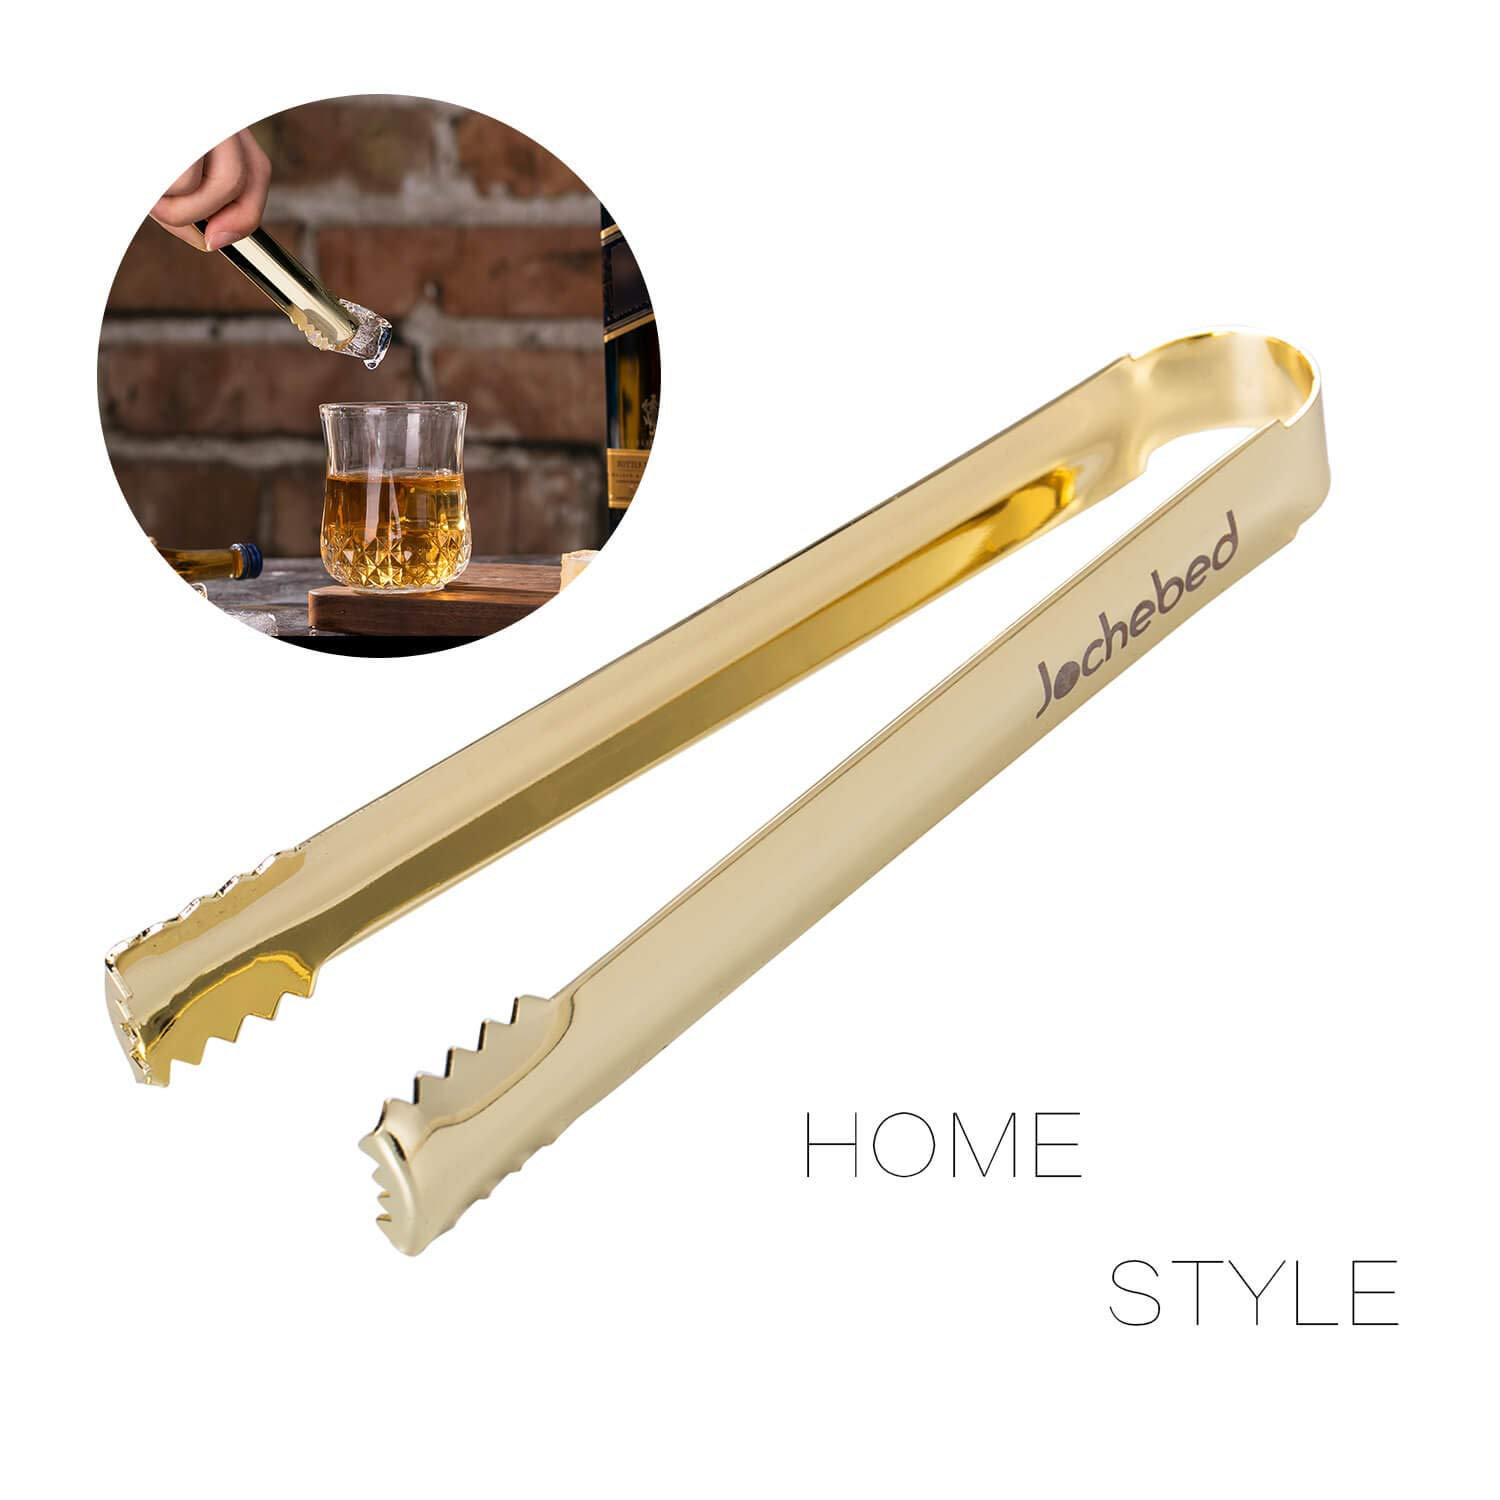 Mini Serving Tongs Metal Appetizers Tongs for Serving Ice Sugar Whiskey Rock Dessert 24K Gold Stainless Steel Ice Bucket Tongs